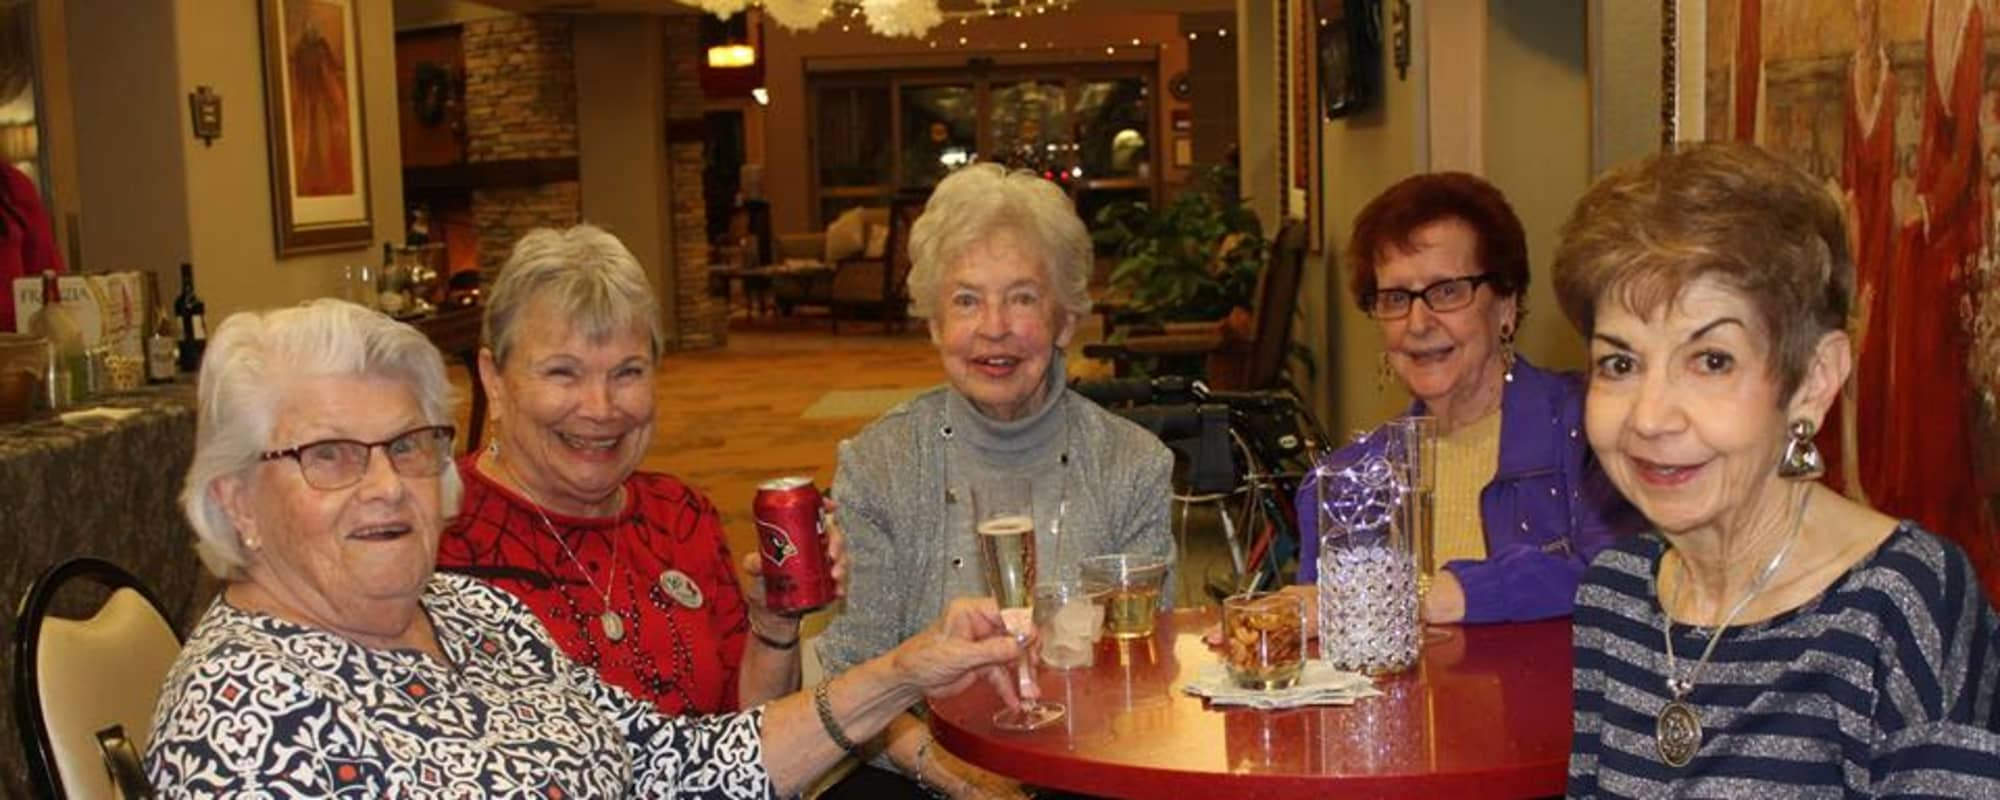 Seniors enjoying drinks at McDowell Village in Scottsdale, Arizona